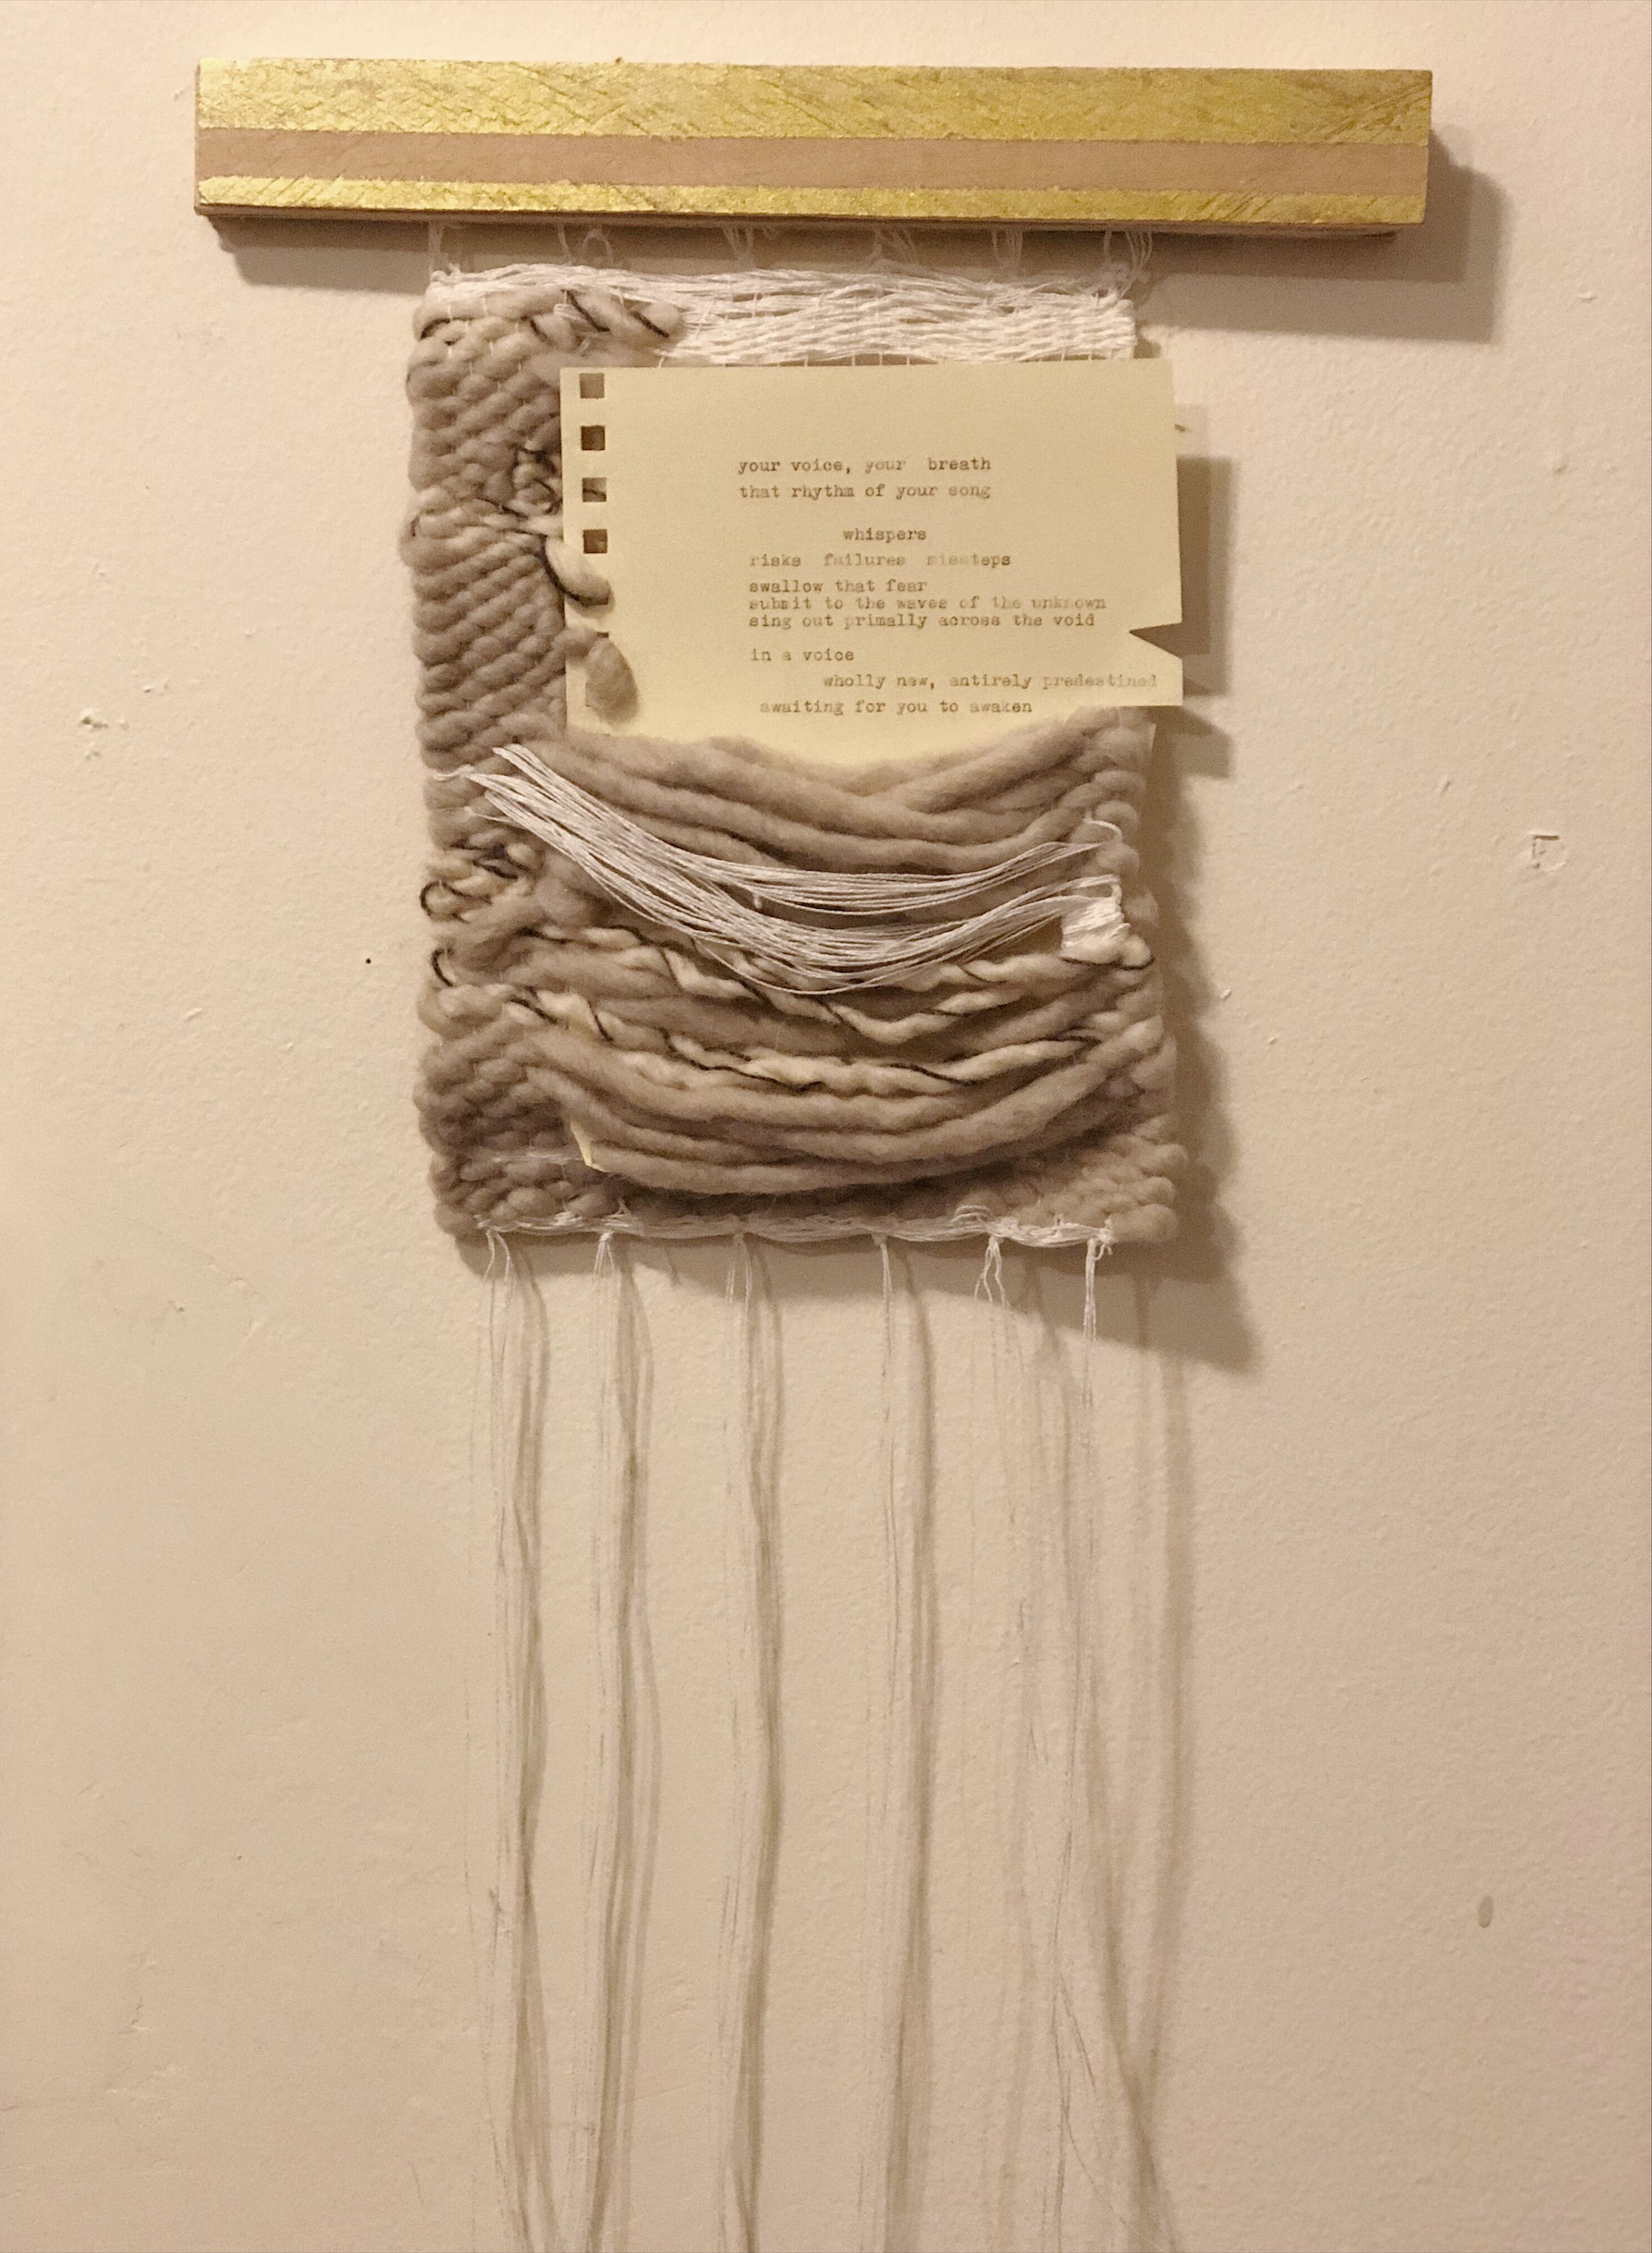 Your voice (2018)  linen, wool, cotton, paper, ink, wood, acrylic paint  18 x 12 x 1in